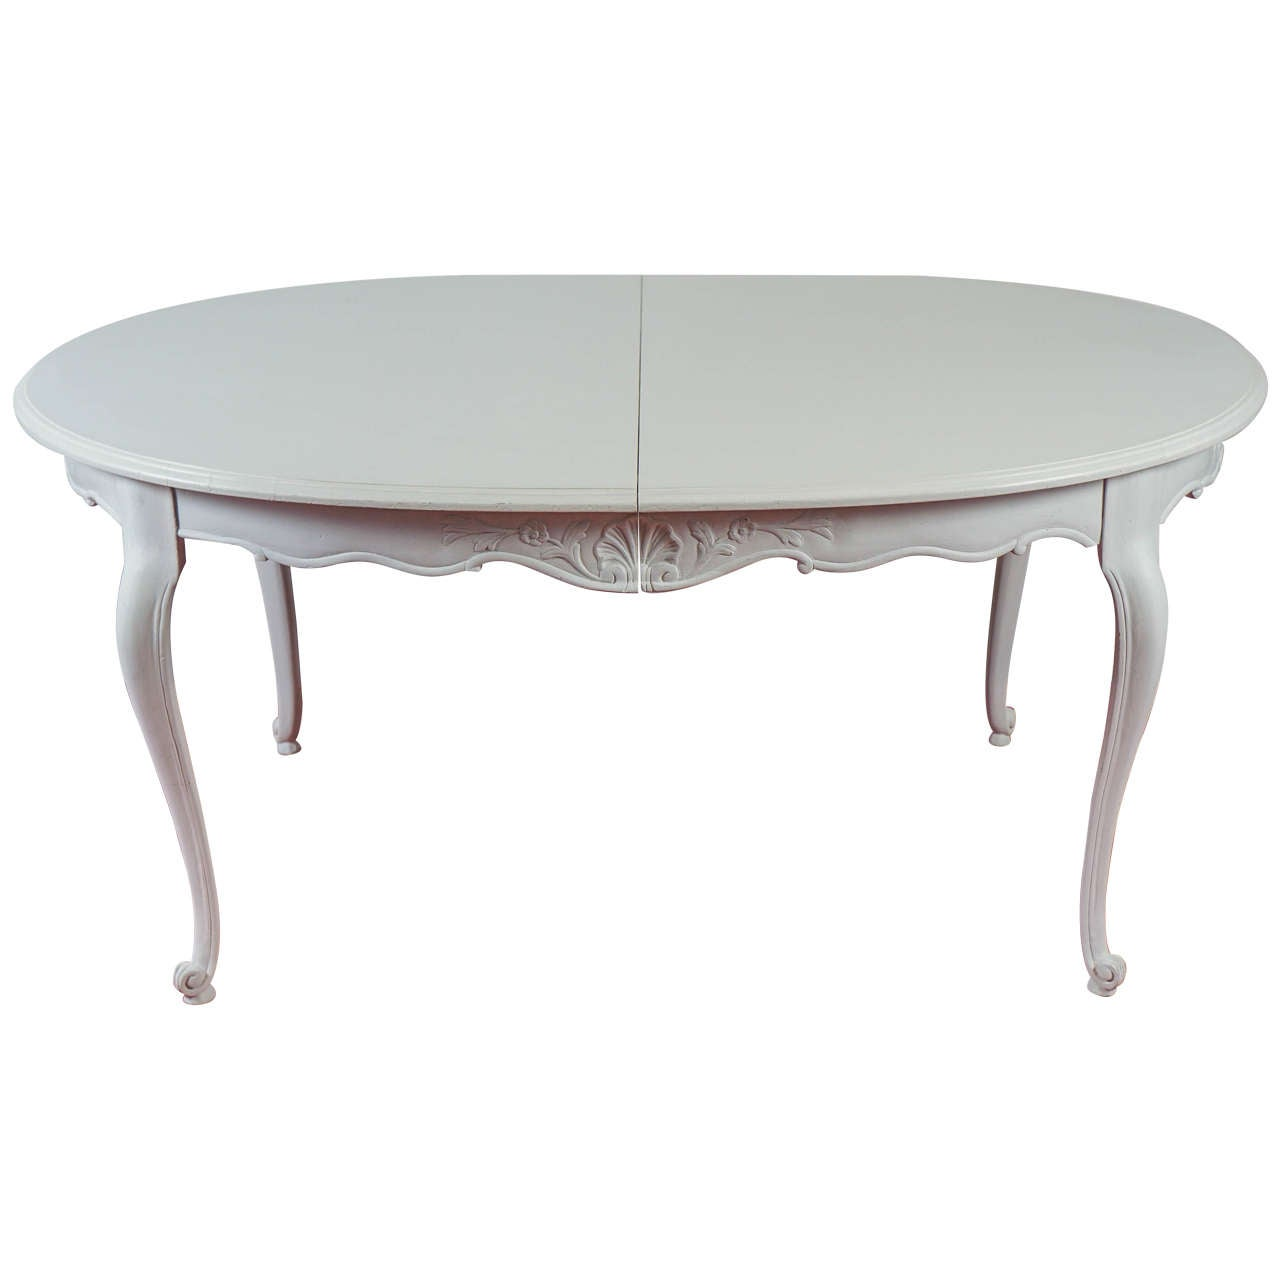 Louis xv style oval dining table at 1stdibs for Dining room table styles